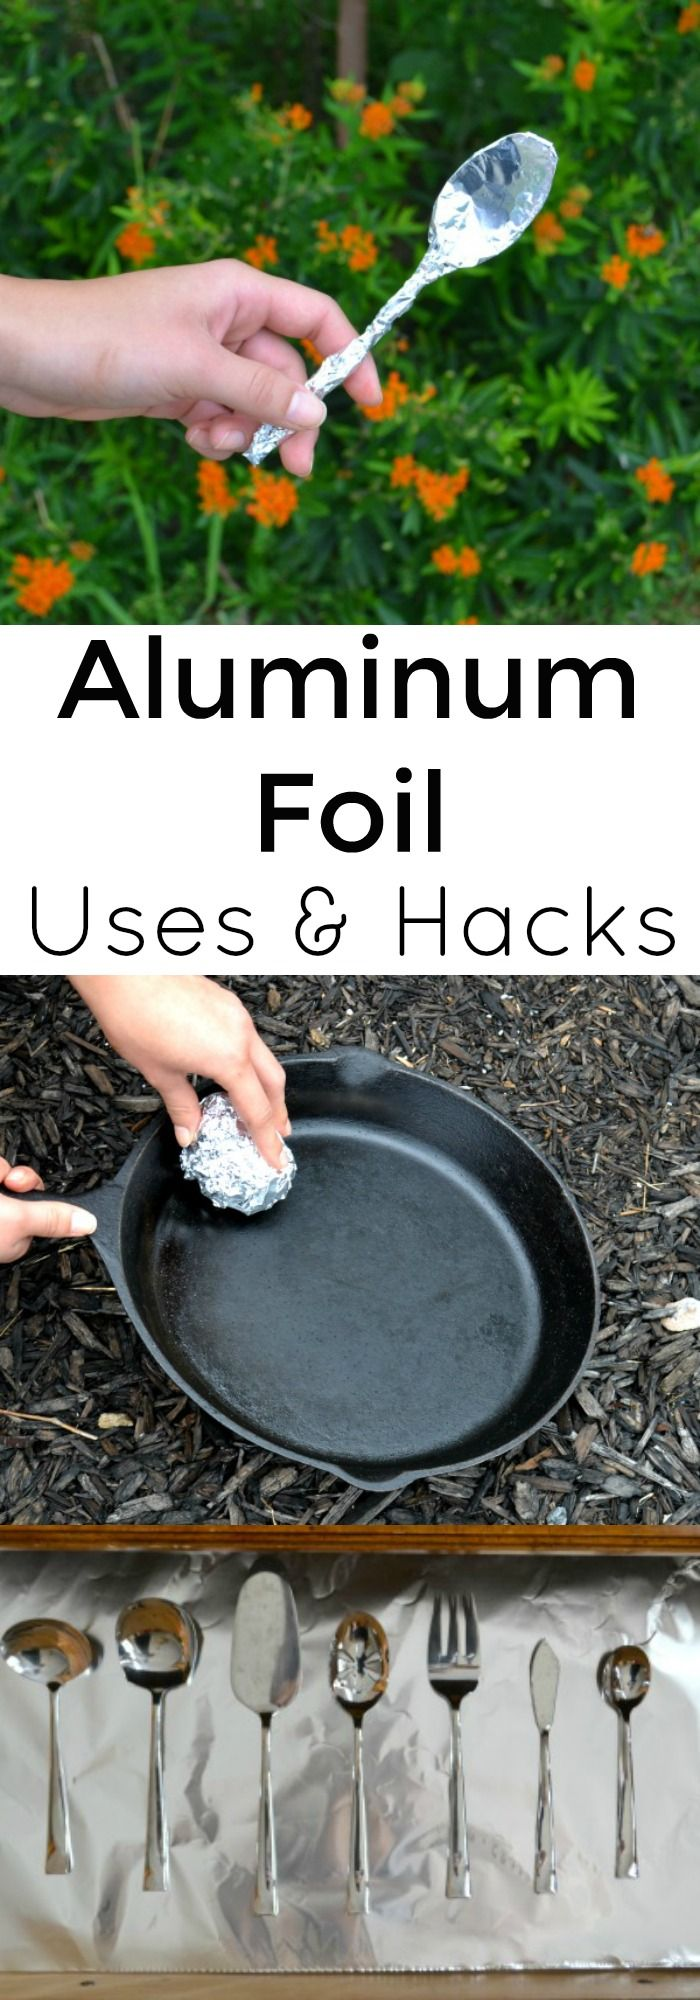 1000 ideas about cleaning aluminum pans on pinterest natural cleaning recipes cleaning. Black Bedroom Furniture Sets. Home Design Ideas